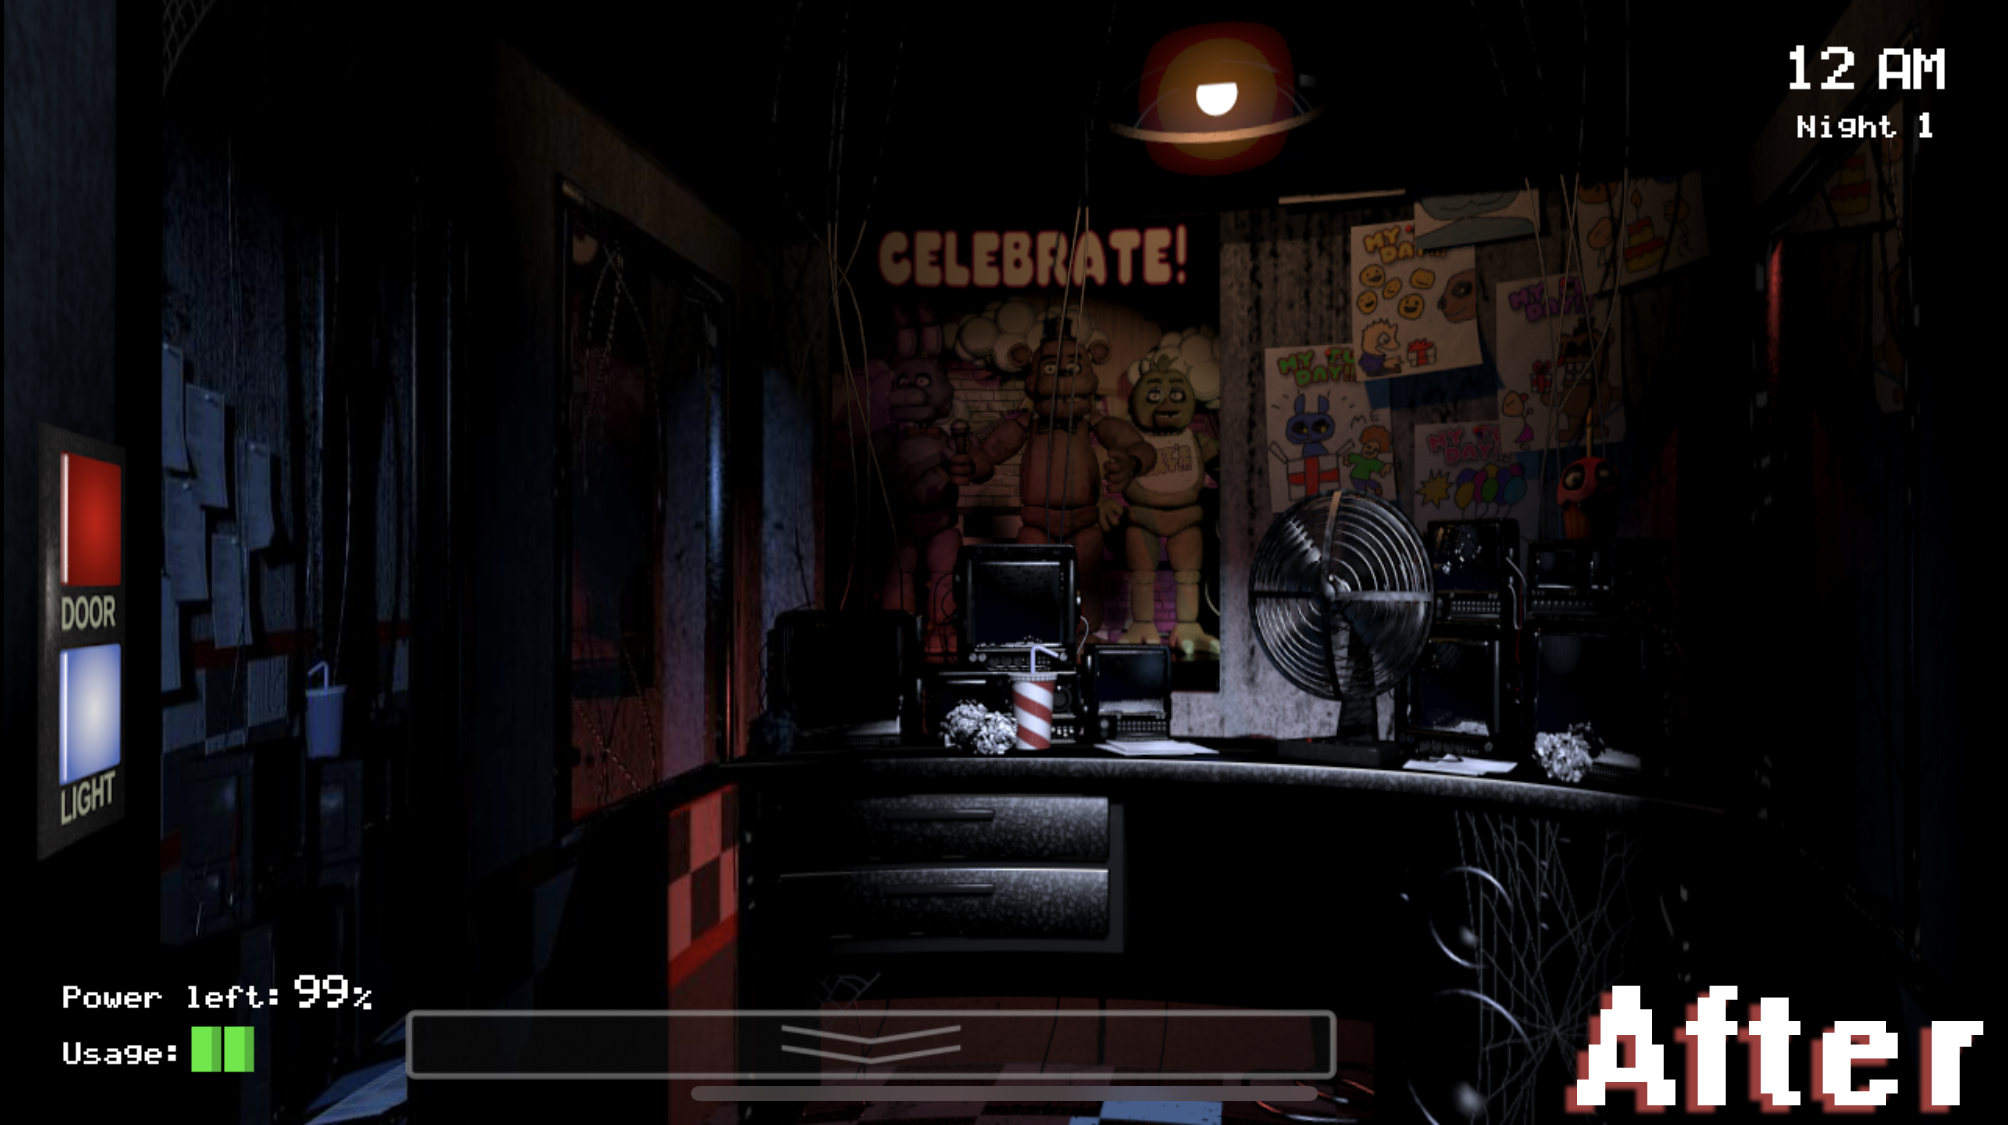 Five Nights at Freddy's' Games Getting Remastered, 'Freddy